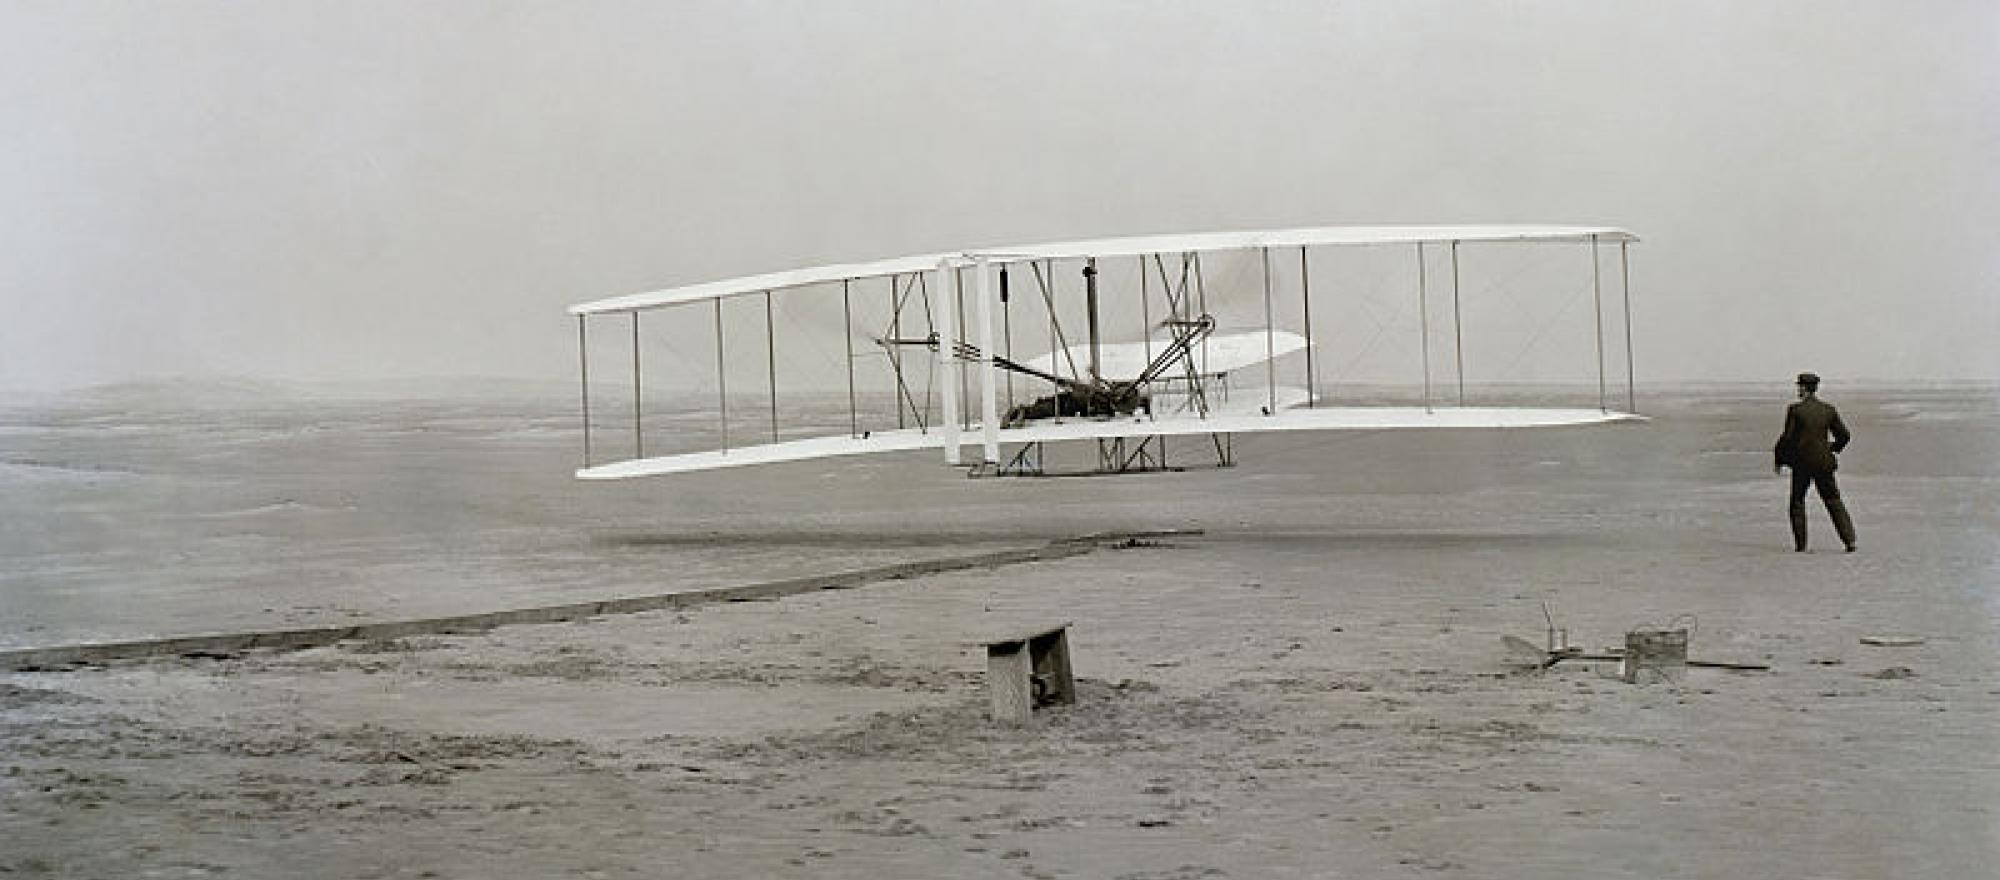 The Wright Brothers take off—only 66 years before Apollo 11.